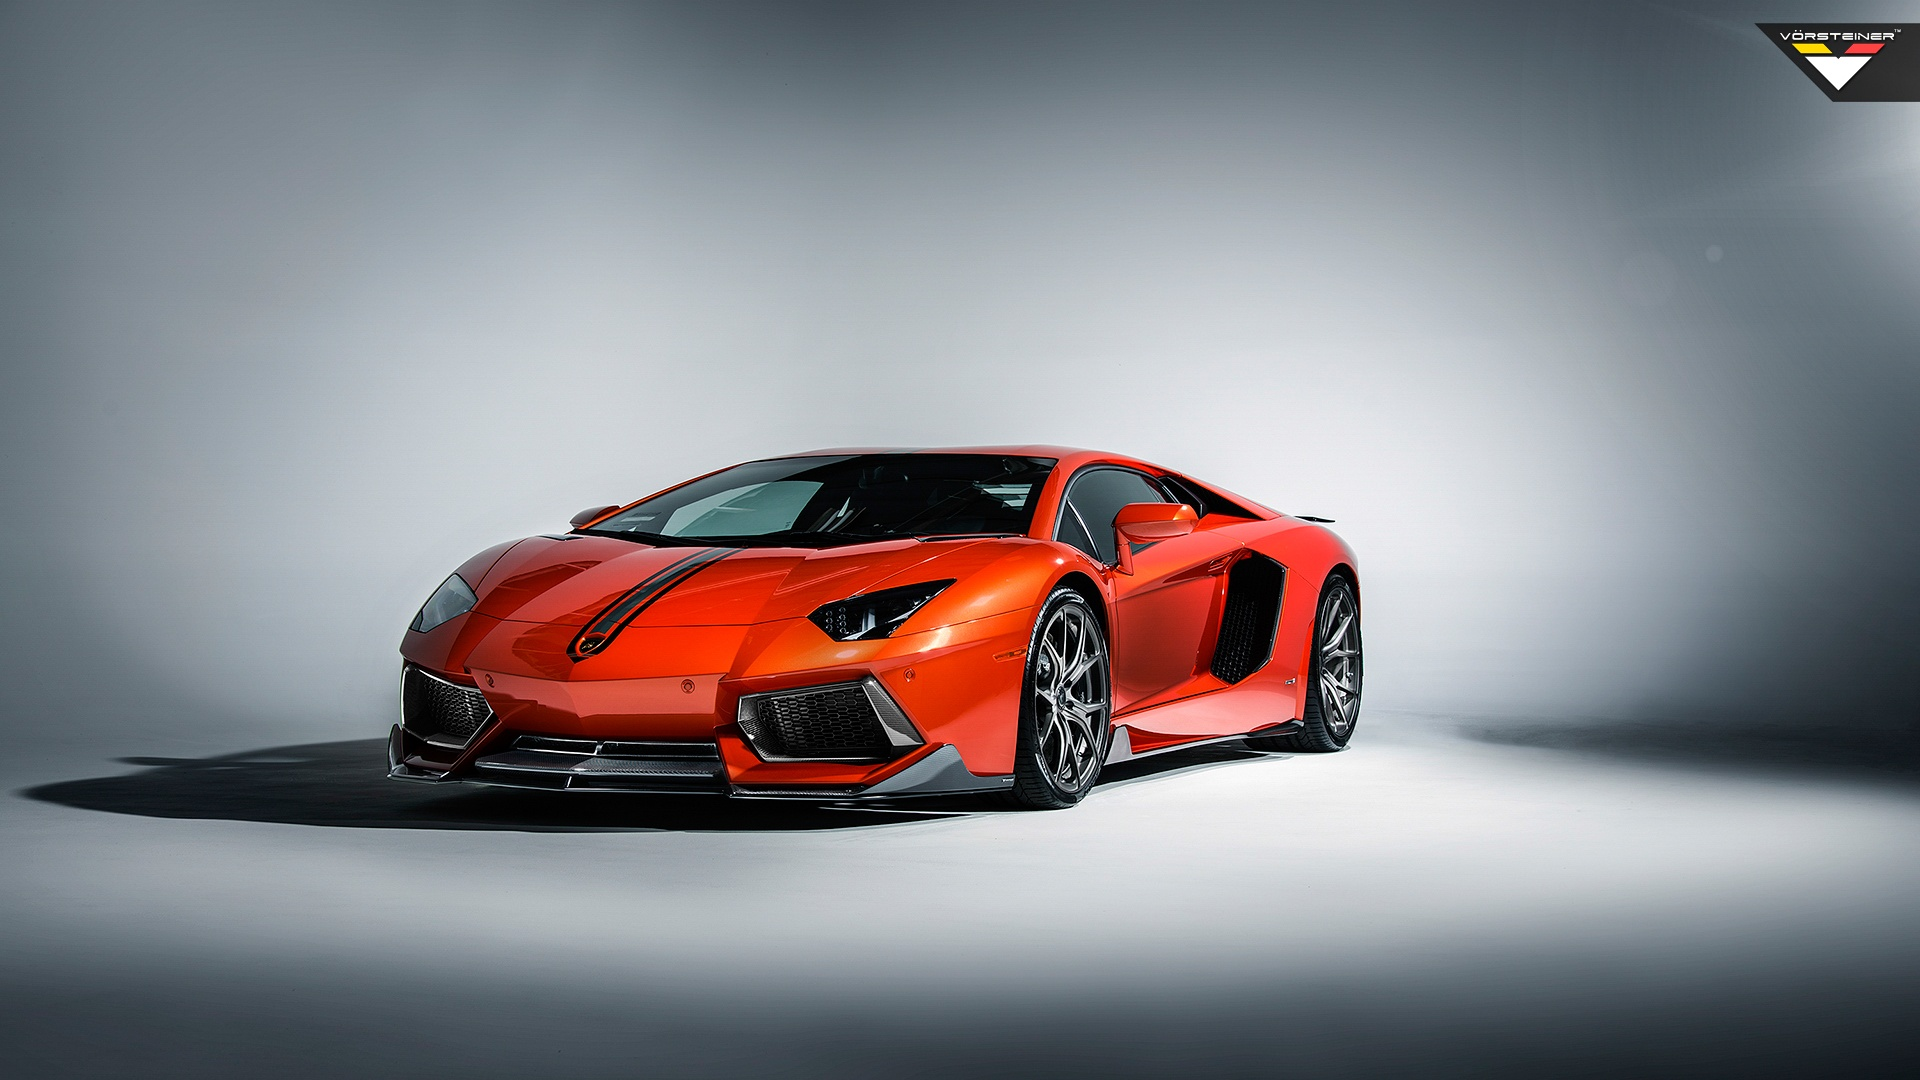 Exotic Cars Hd Wallpapers: 25+ Exotic & Awesome Car Wallpapers [HD Edition]